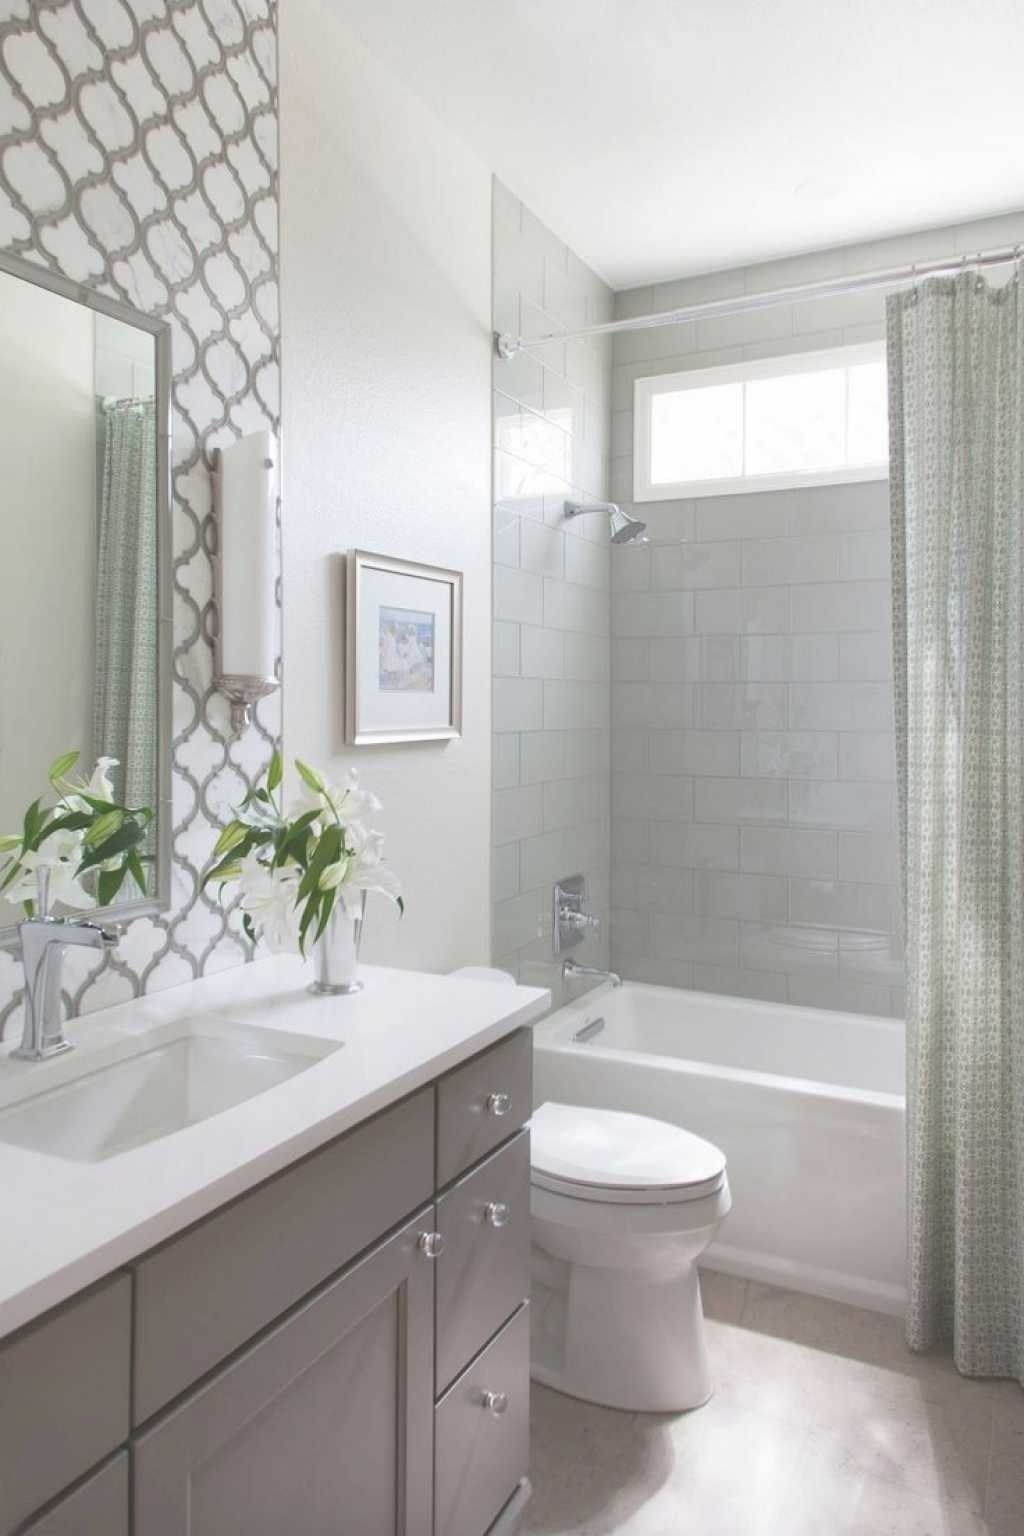 Nice 40 Graceful Tiny Apartment Bathroom Remodel Ideas on A Budget ...